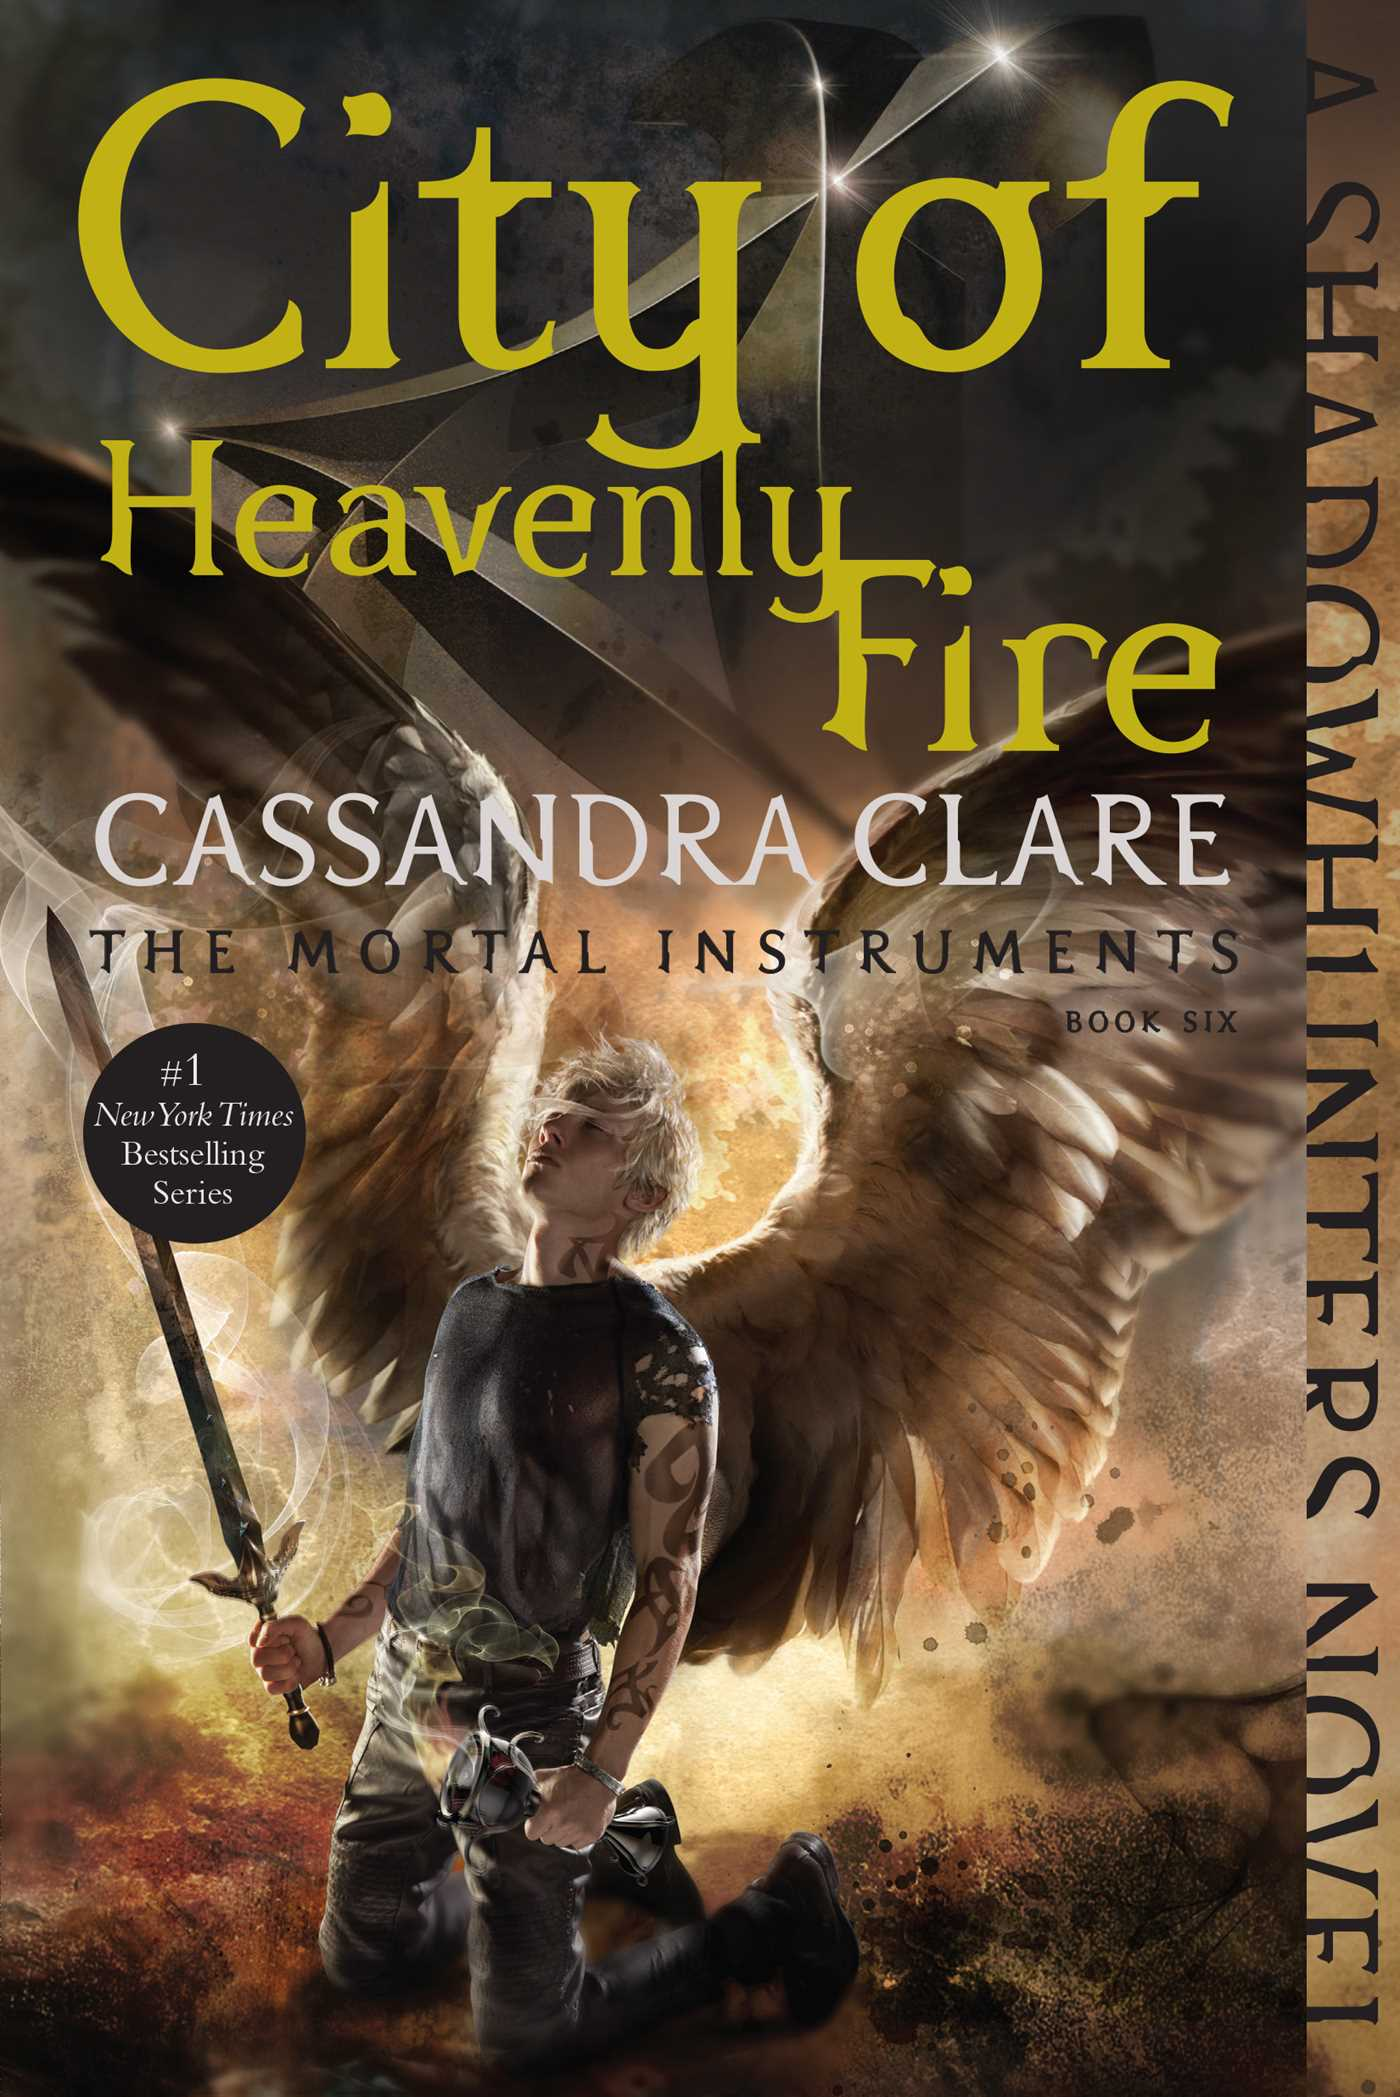 City-of-heavenly-fire-9781442416918_hr